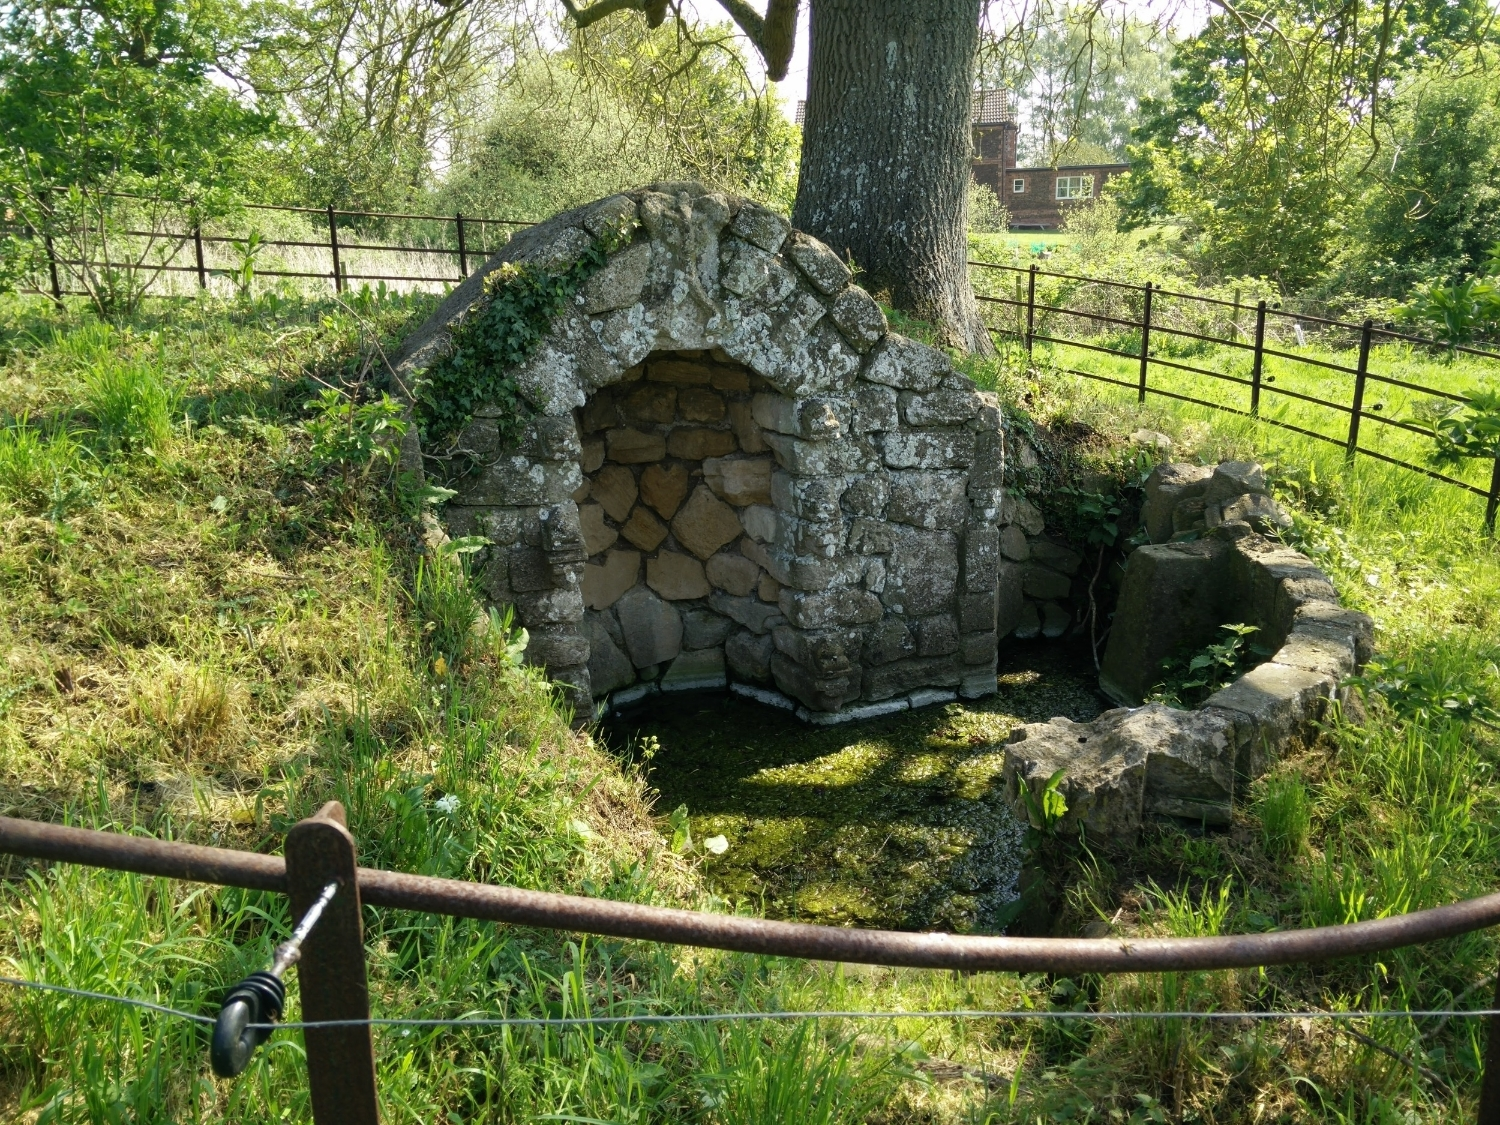 A holy well near to the church, which was on the medieval pilgrimage route to Walsingham